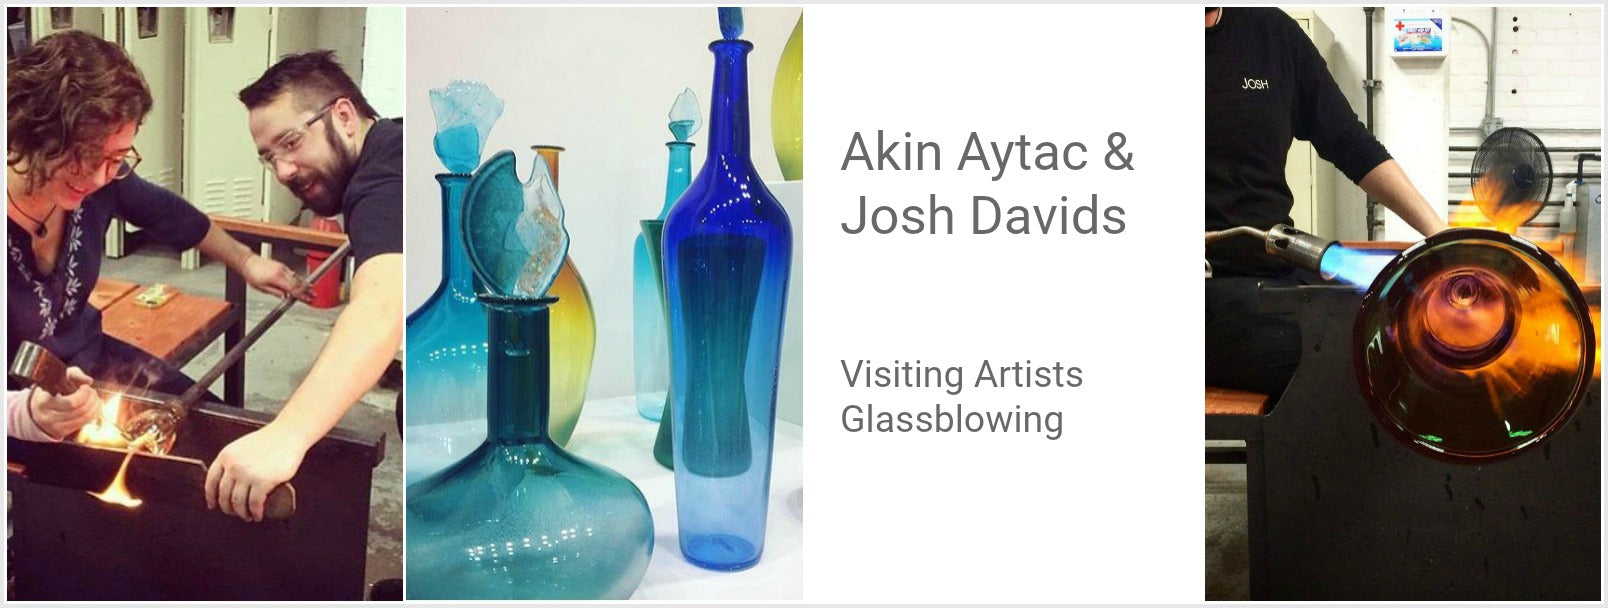 Ekin Aytac and Josh Davids, Visiting Artists, Working Hot